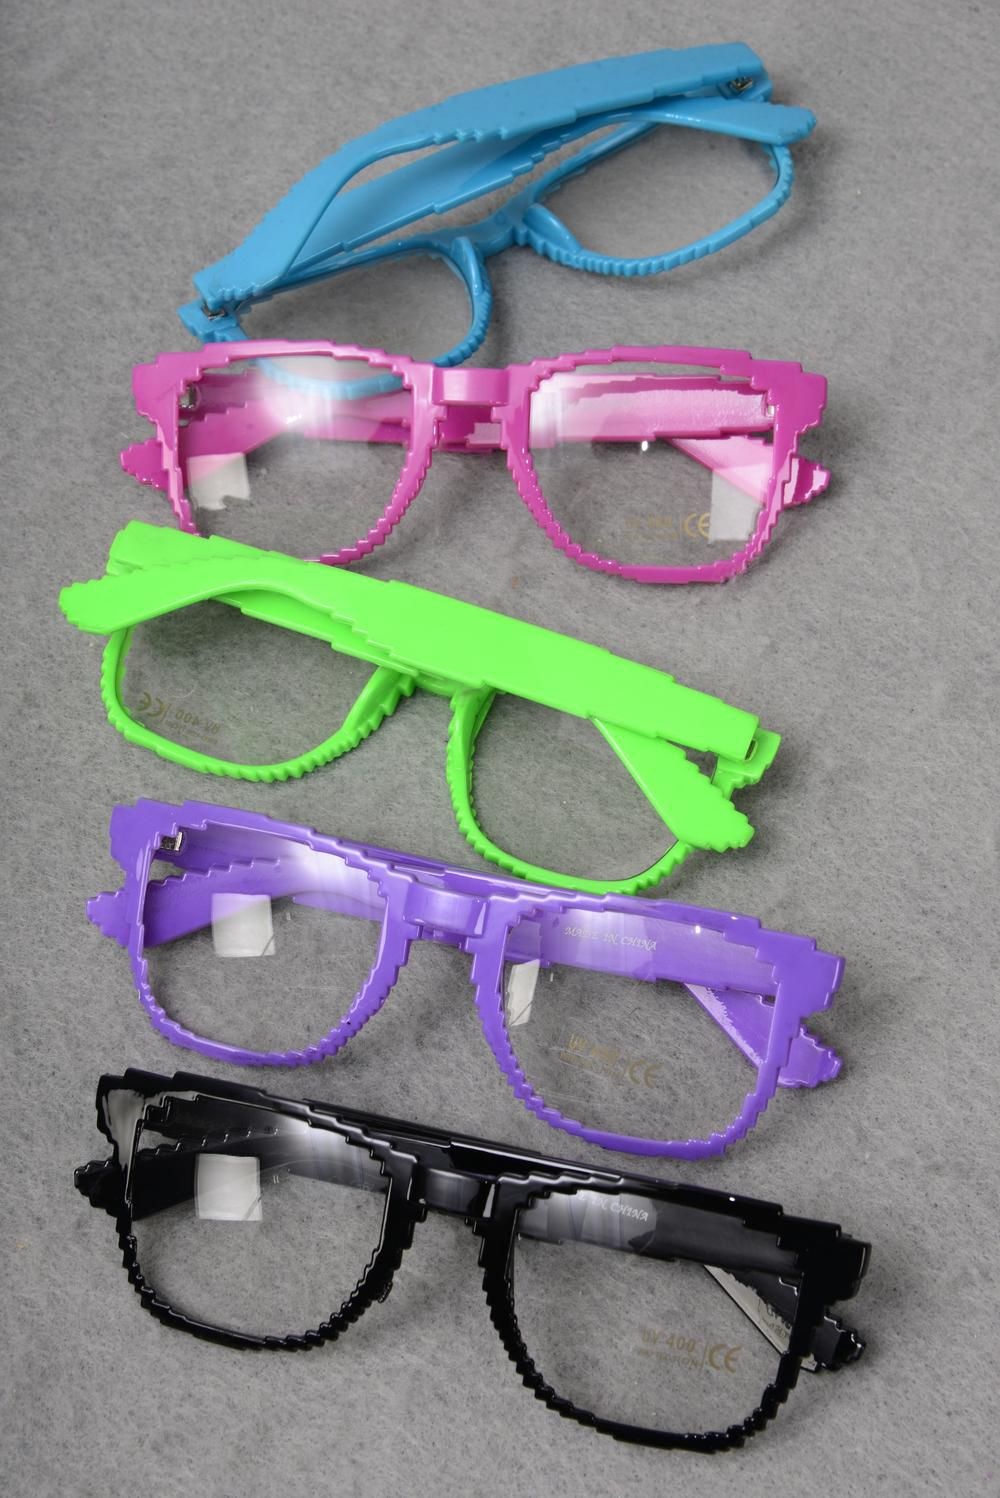 Sun glass Digi W Clear Lens Color Asst/DZ Clear Lens,8 Black,2 Purple,2 Pink,2 Lime mix,OPP Bag & UPC Code,come W Box -